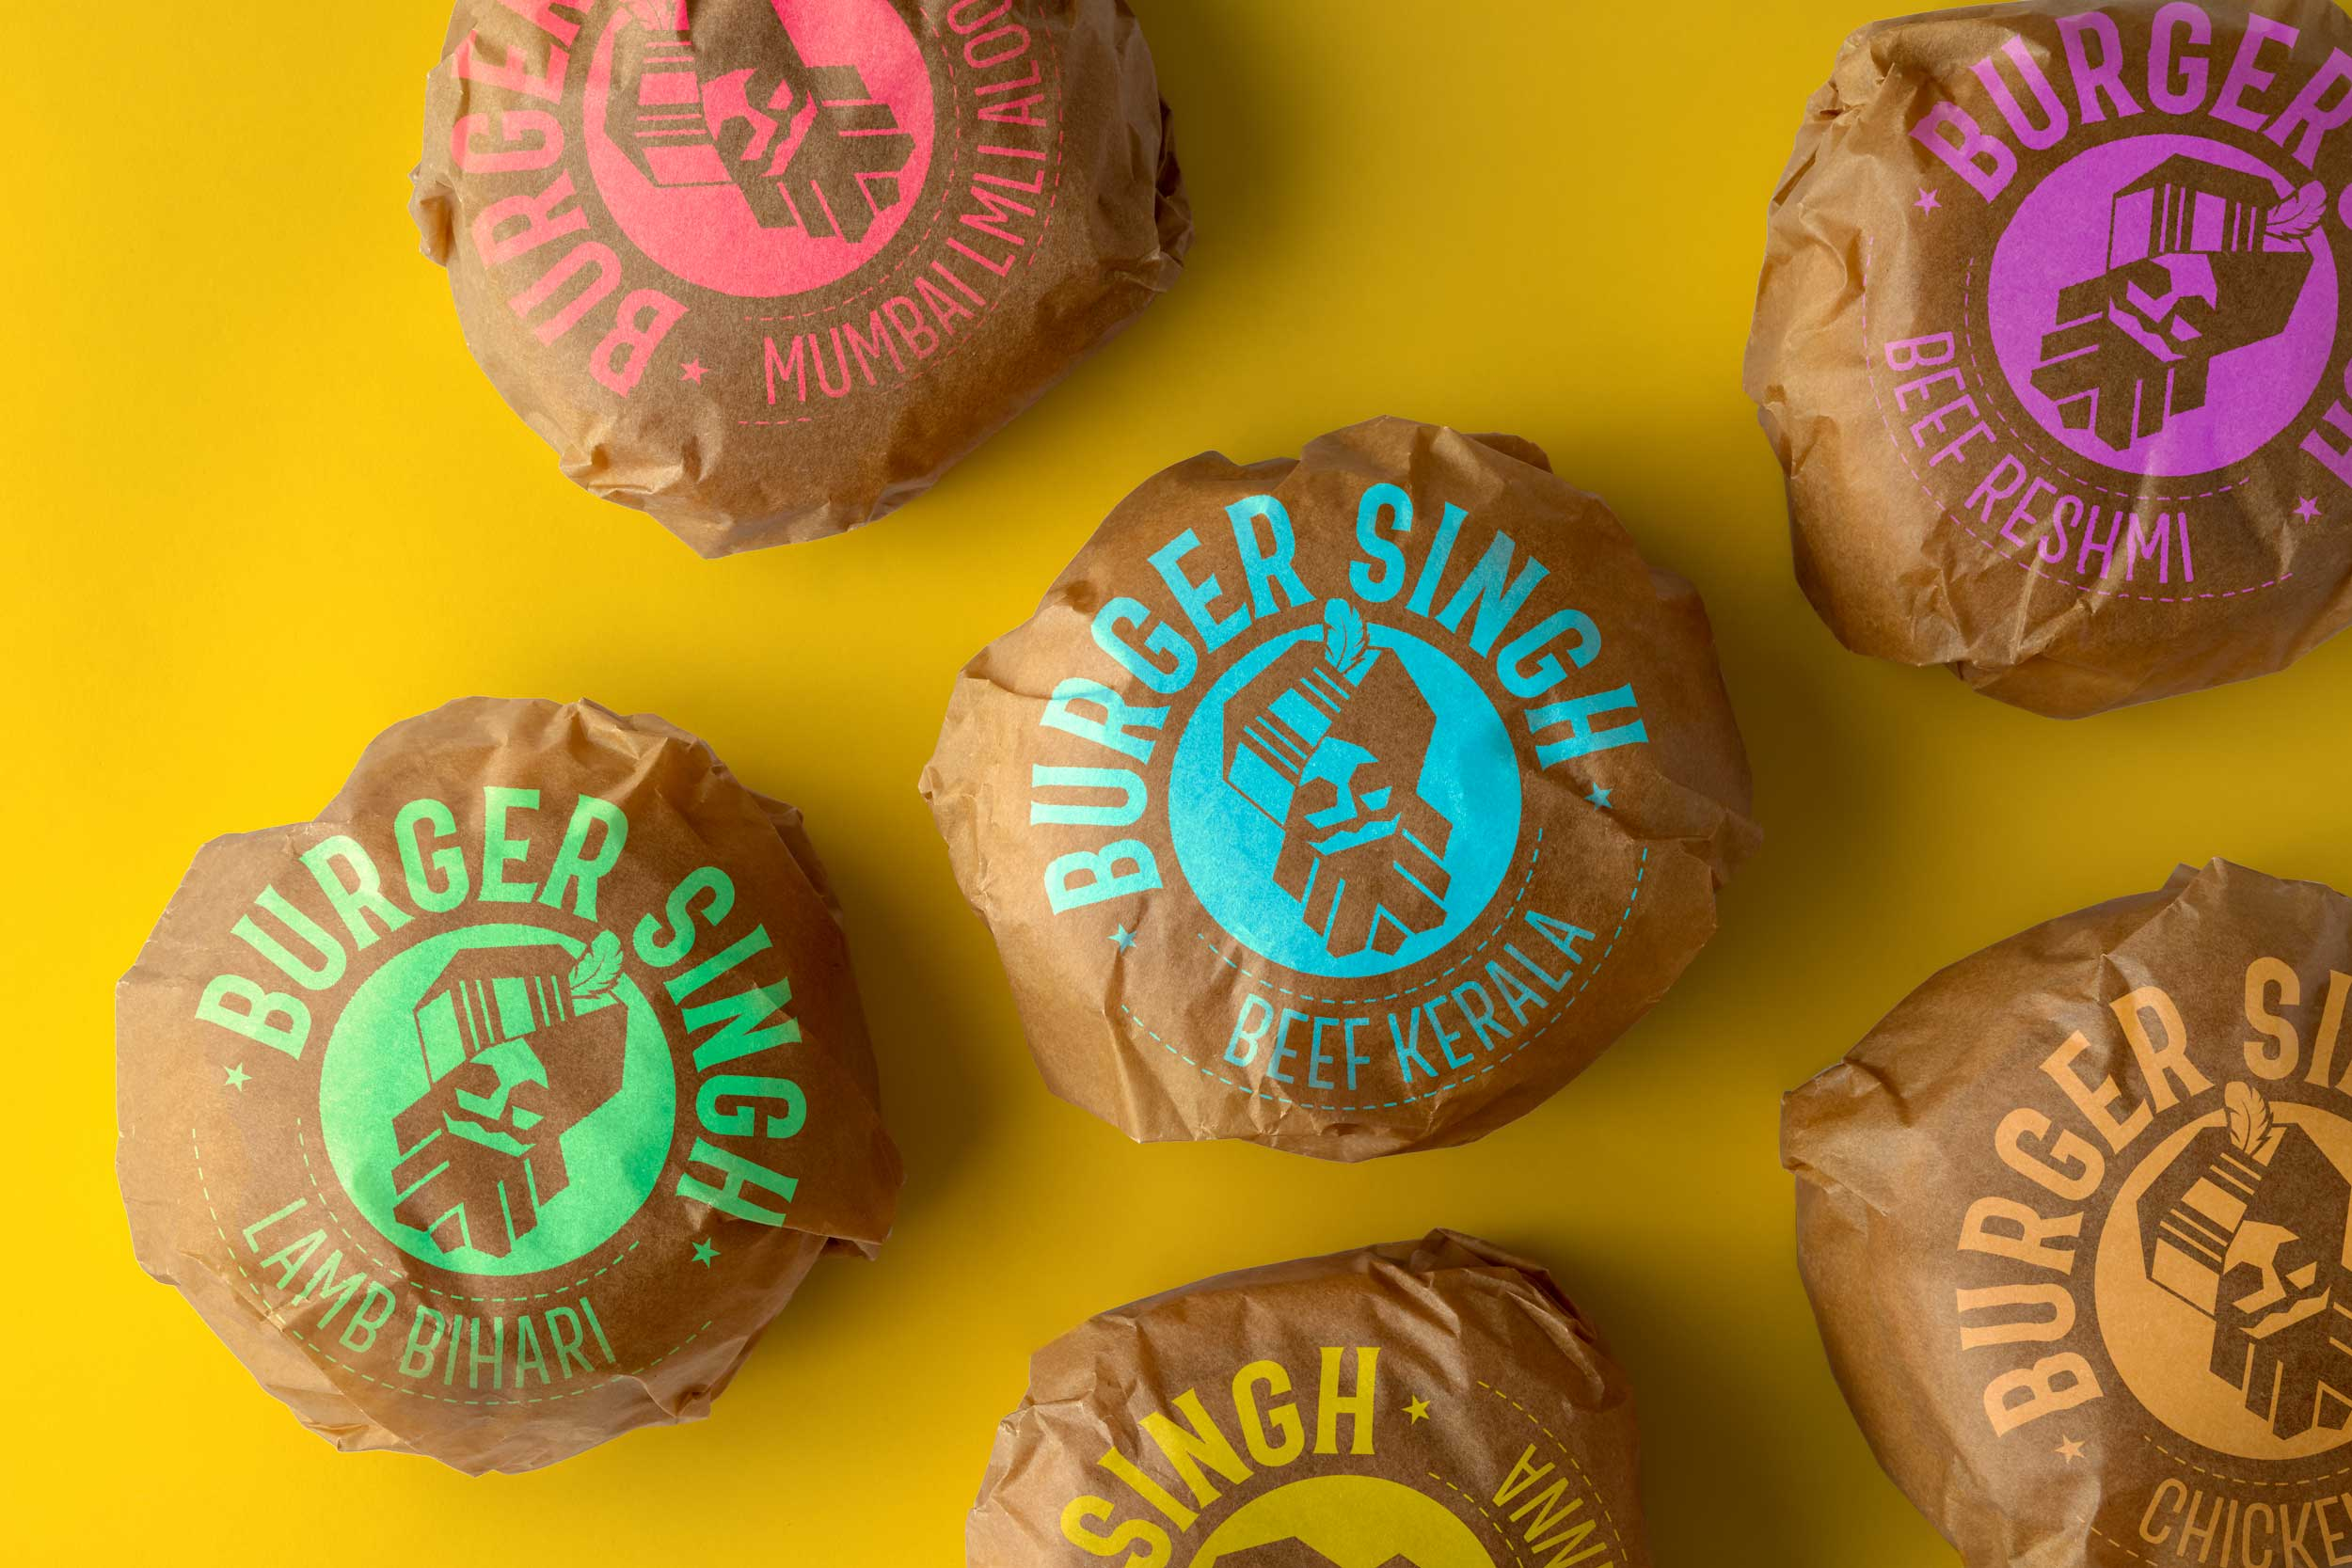 Wrapped Burger with brown paper and adapted logo that the individual burger name on it.